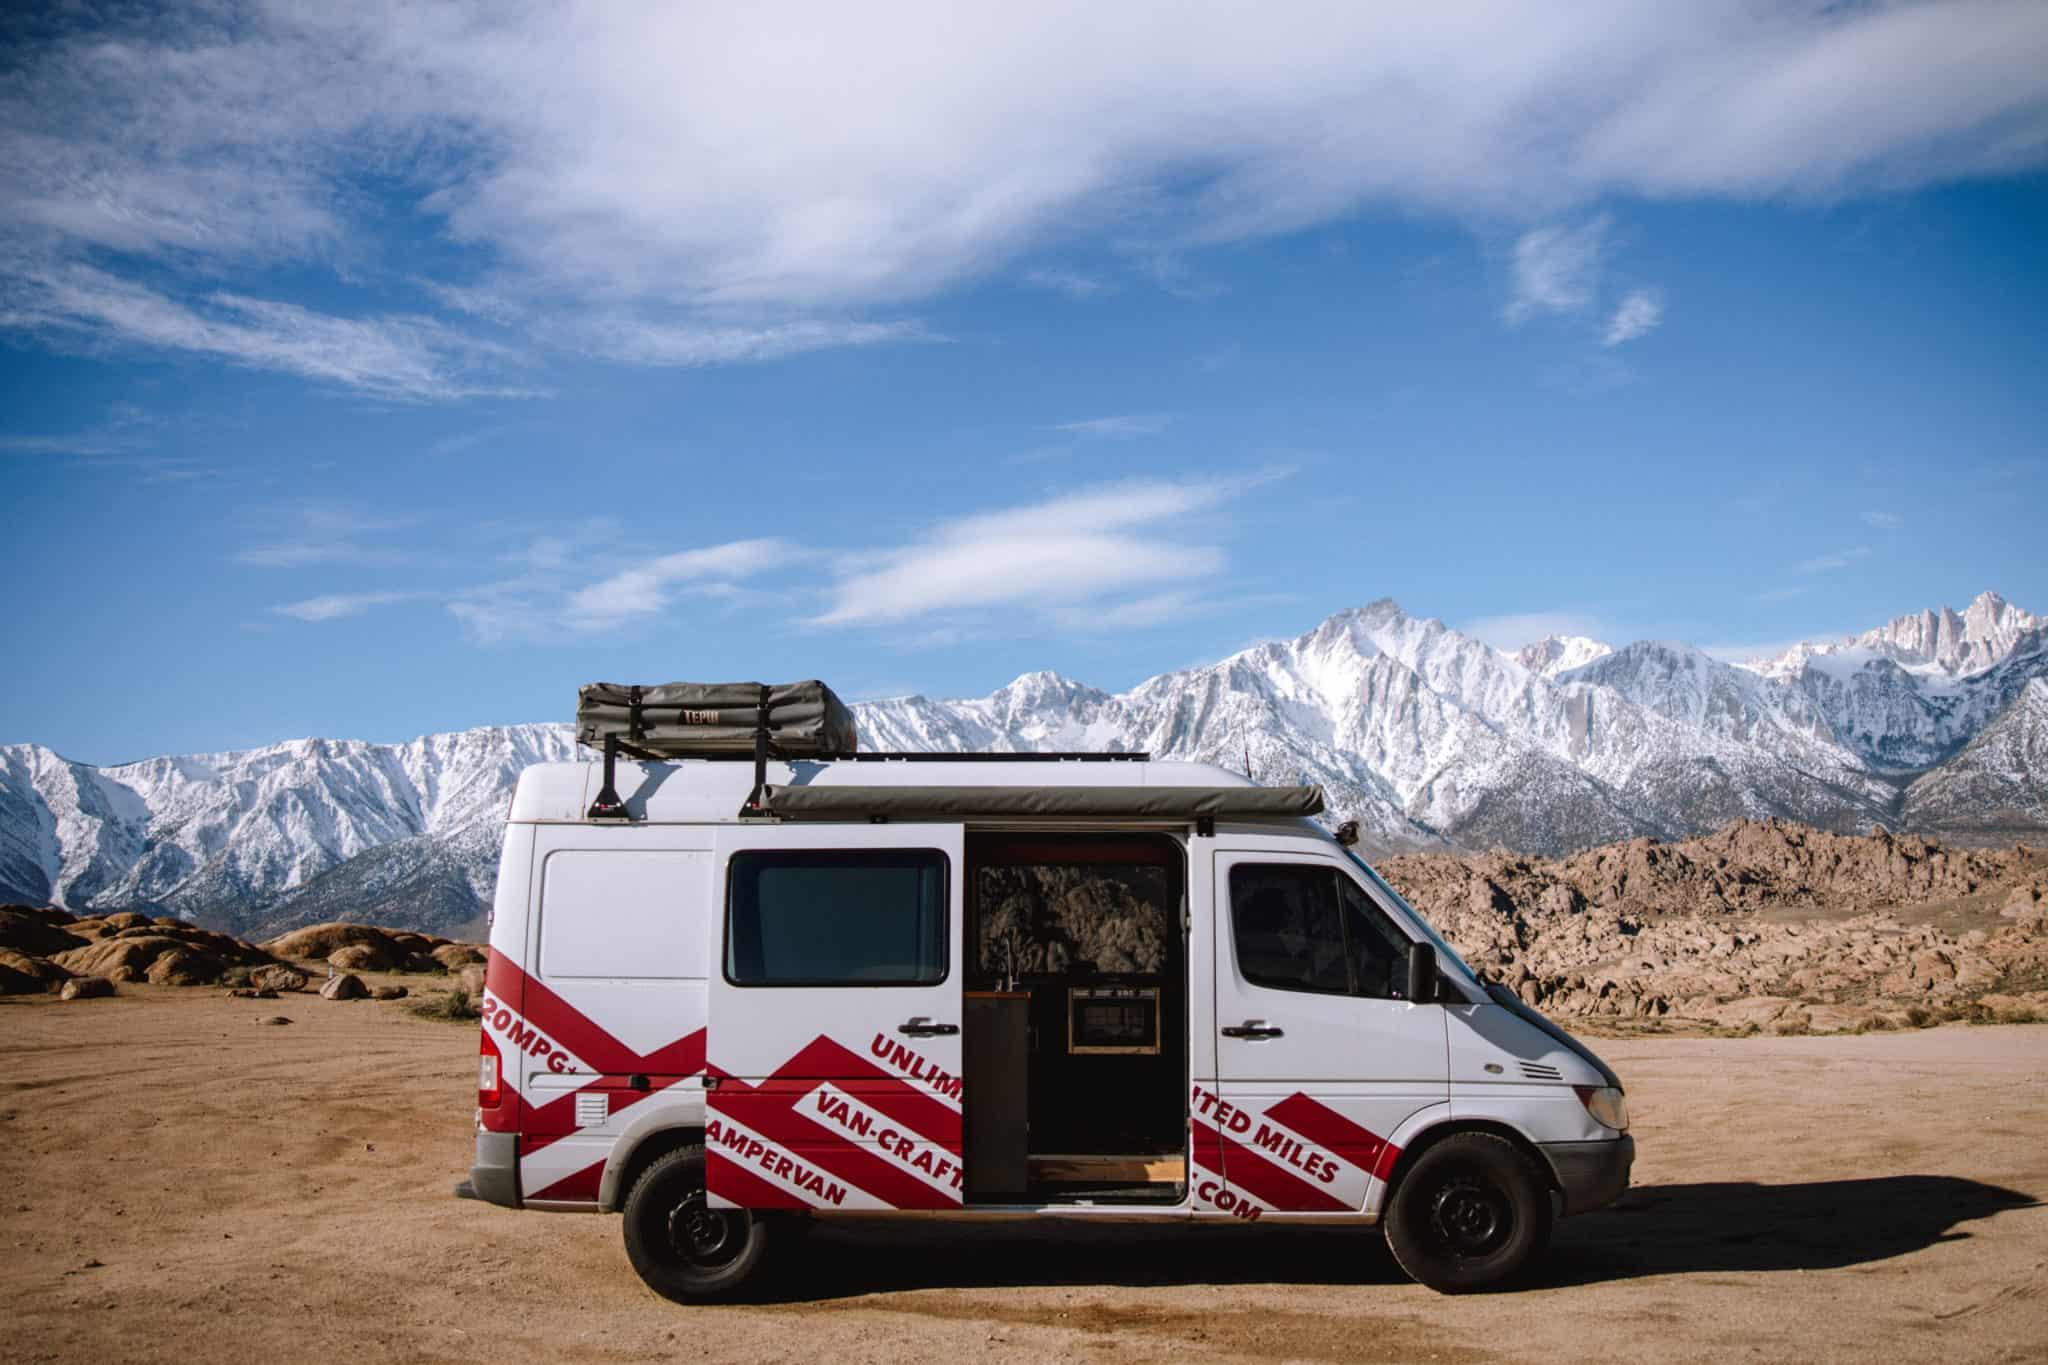 Sprinter van for camping at Alabama Hills, California